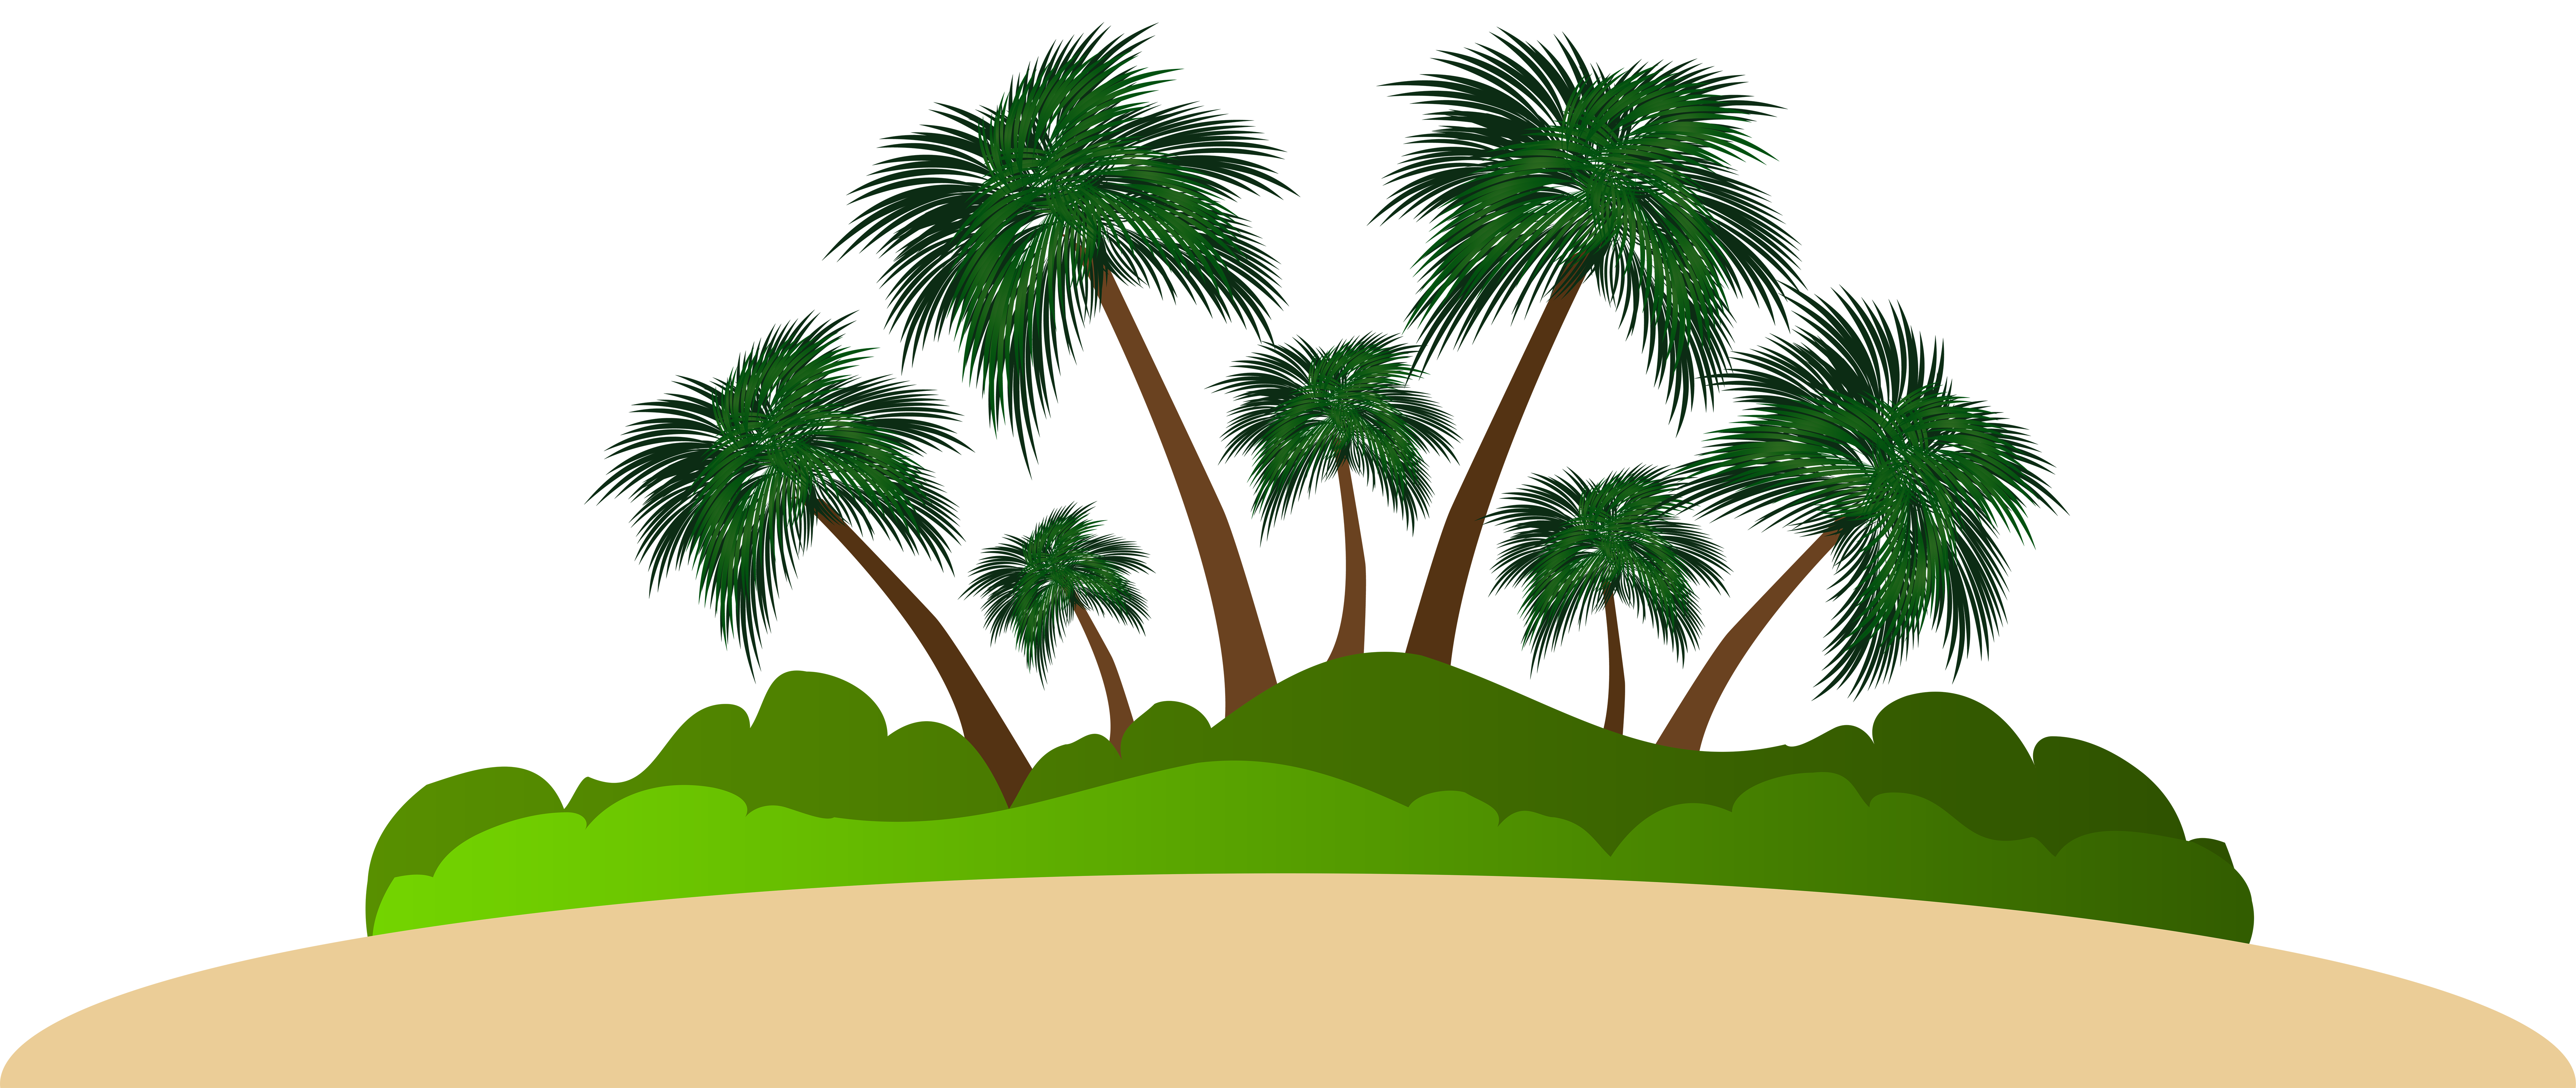 Island clipart. Palm png clip art